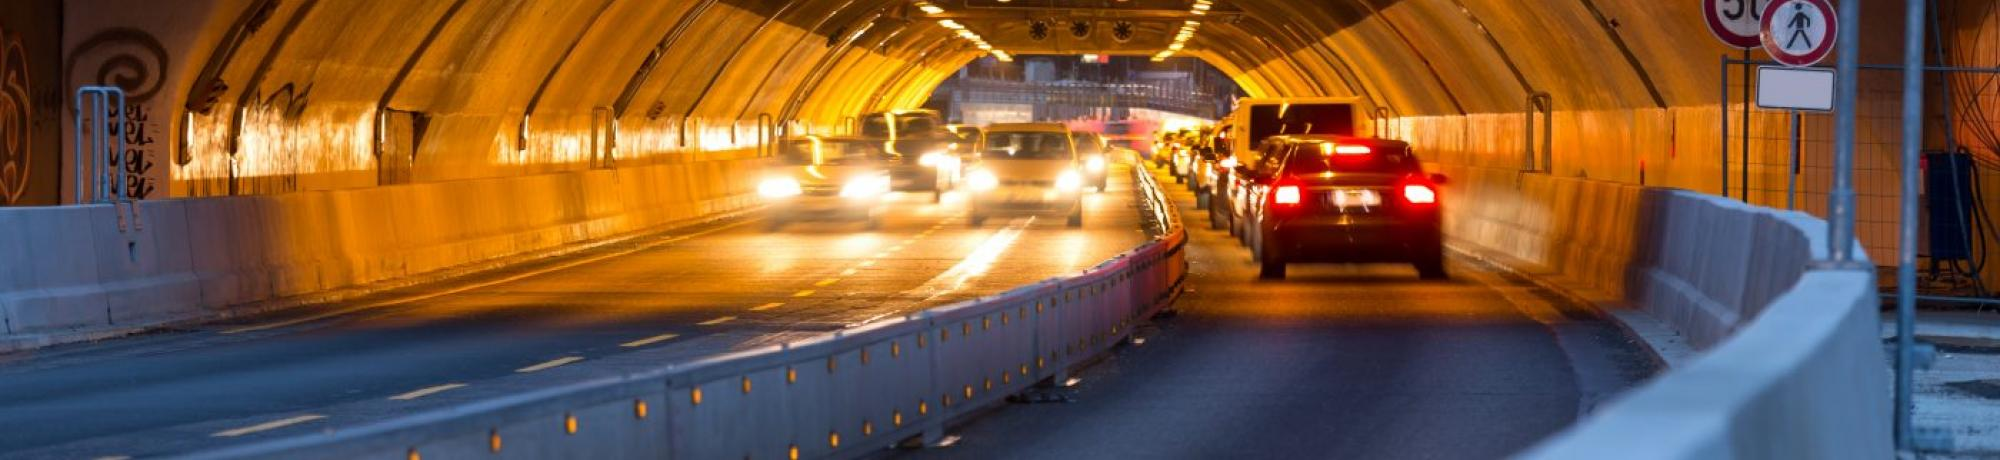 Image: a vehicular tunnel with cars driving through.